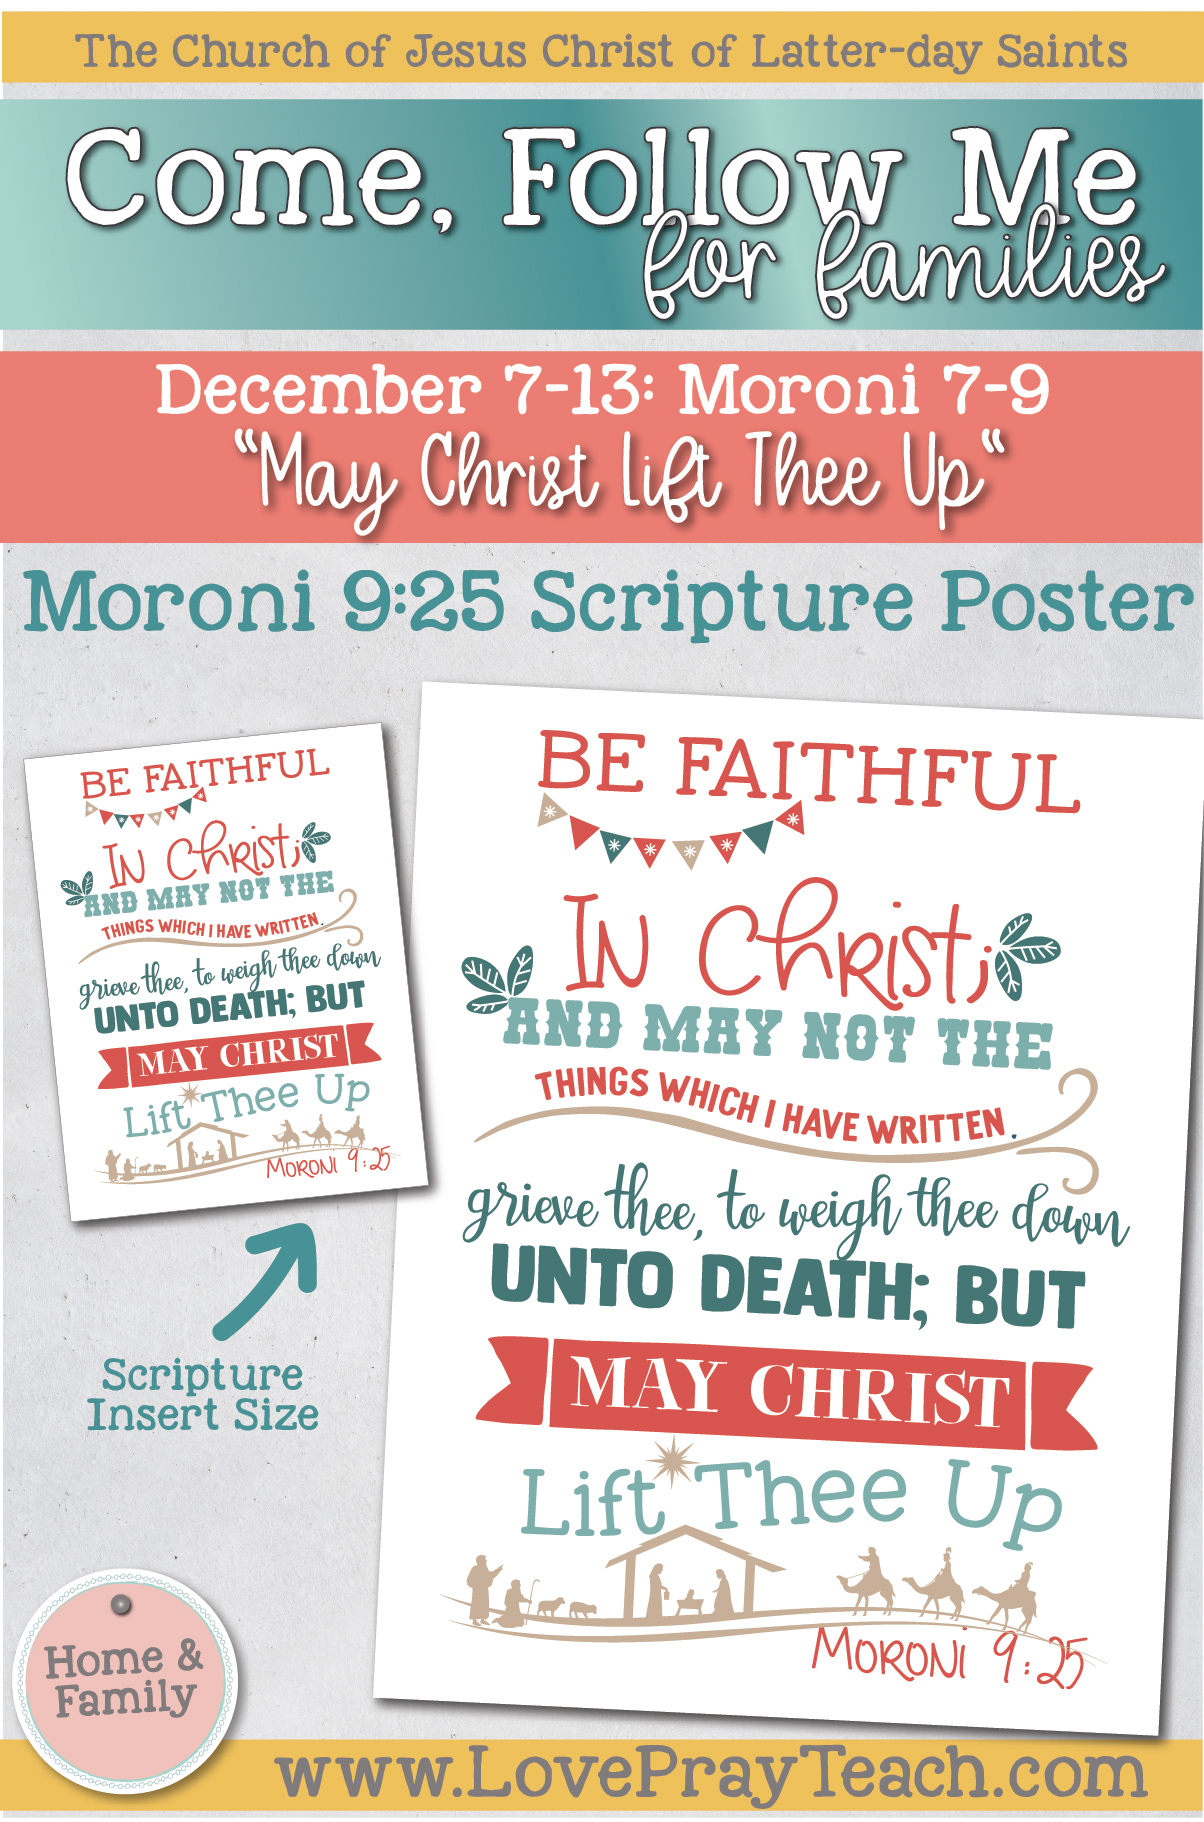 "Come, Follow Me—For Individuals and Families: Book of Mormon 2020 -December Week 2-December 7-13, Moroni 7-96""May Christ Lift Thee Up"""